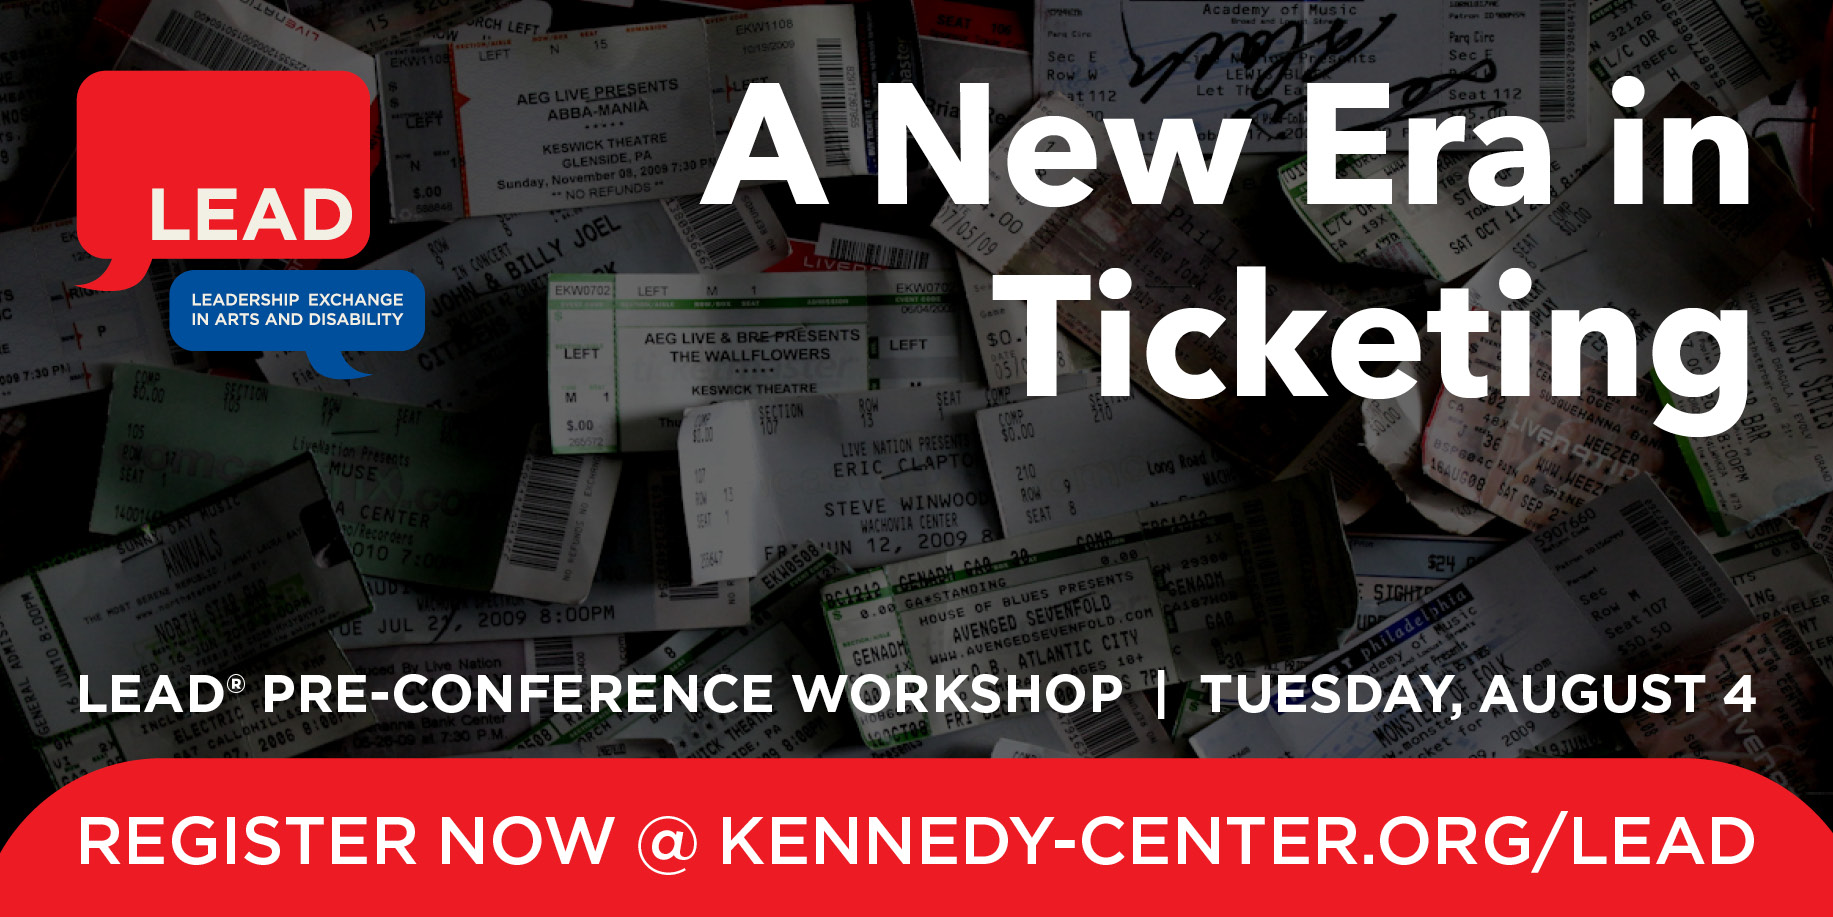 Pre-Conference Graphic: A New Era in Ticketing